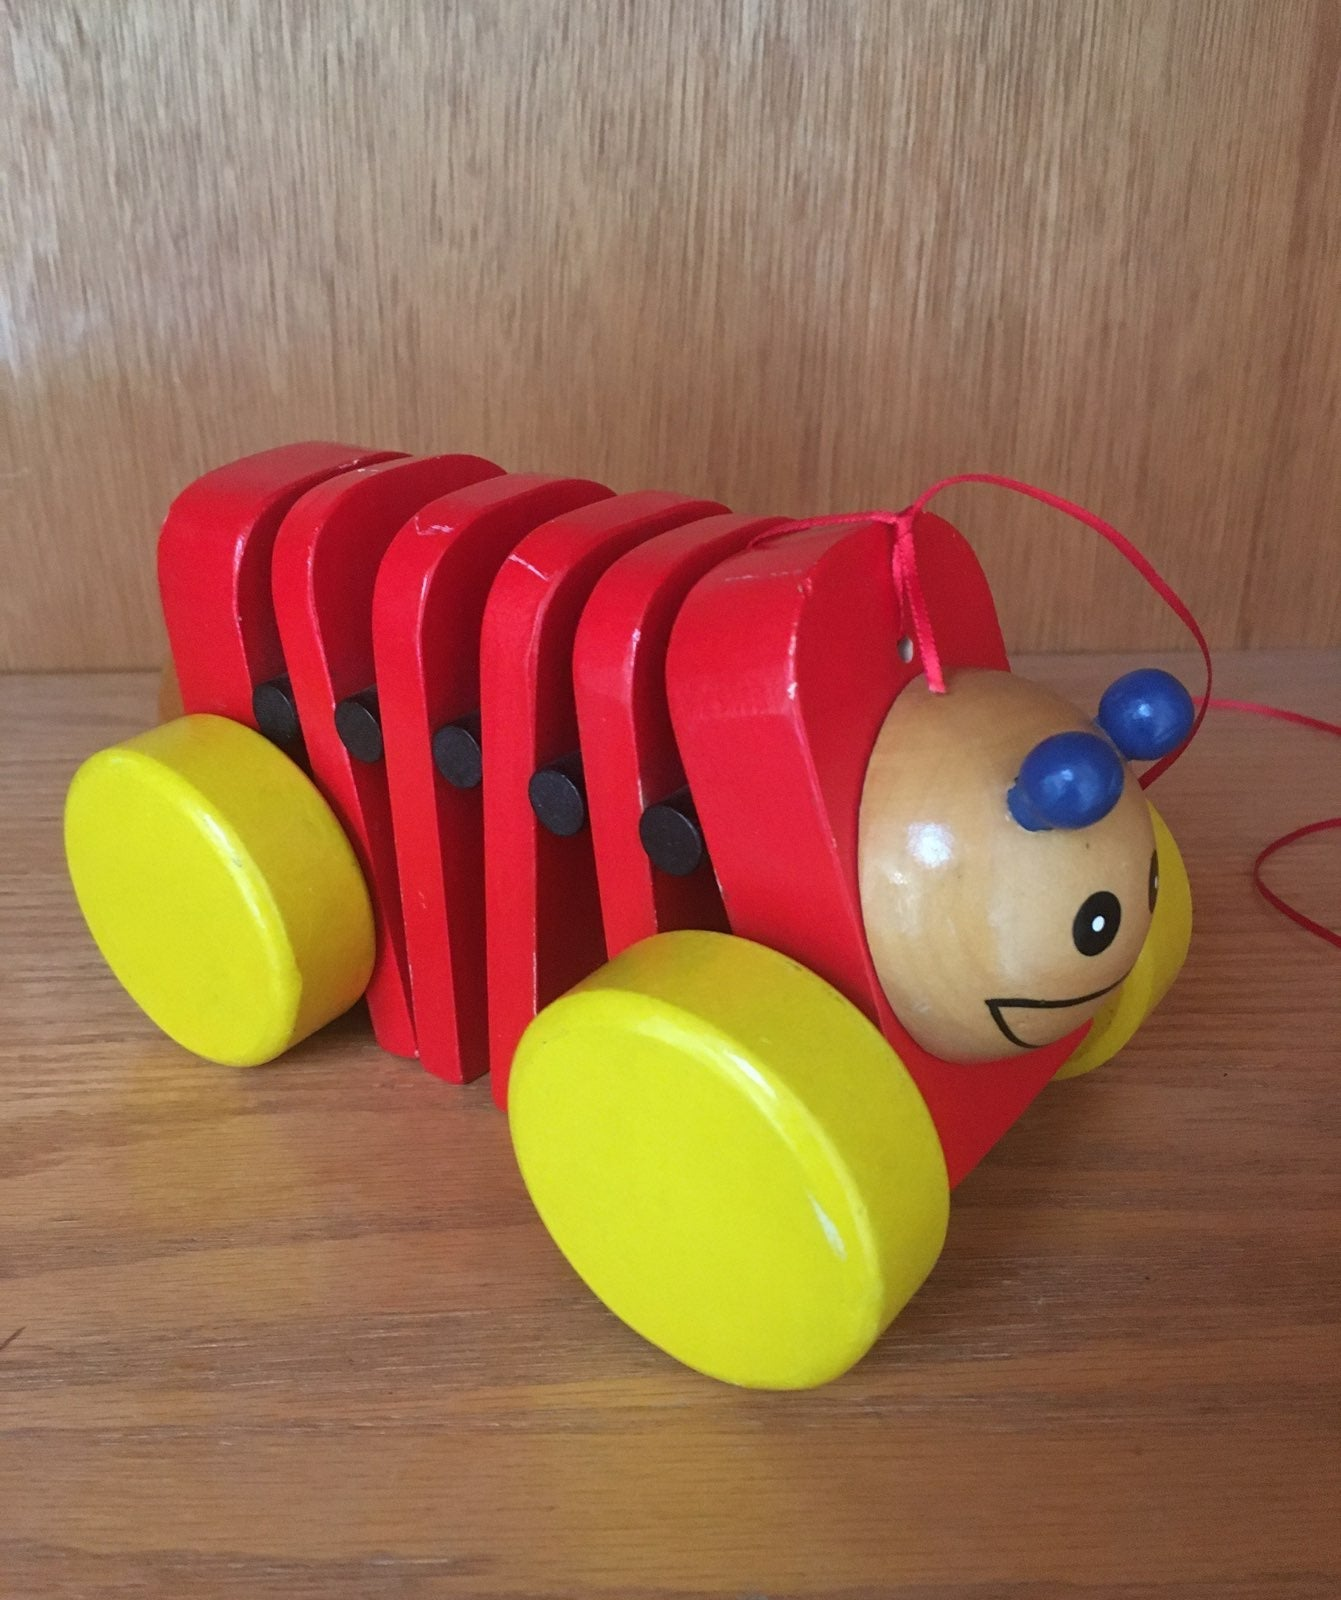 caterpillar pull-along toy, wooden (red)